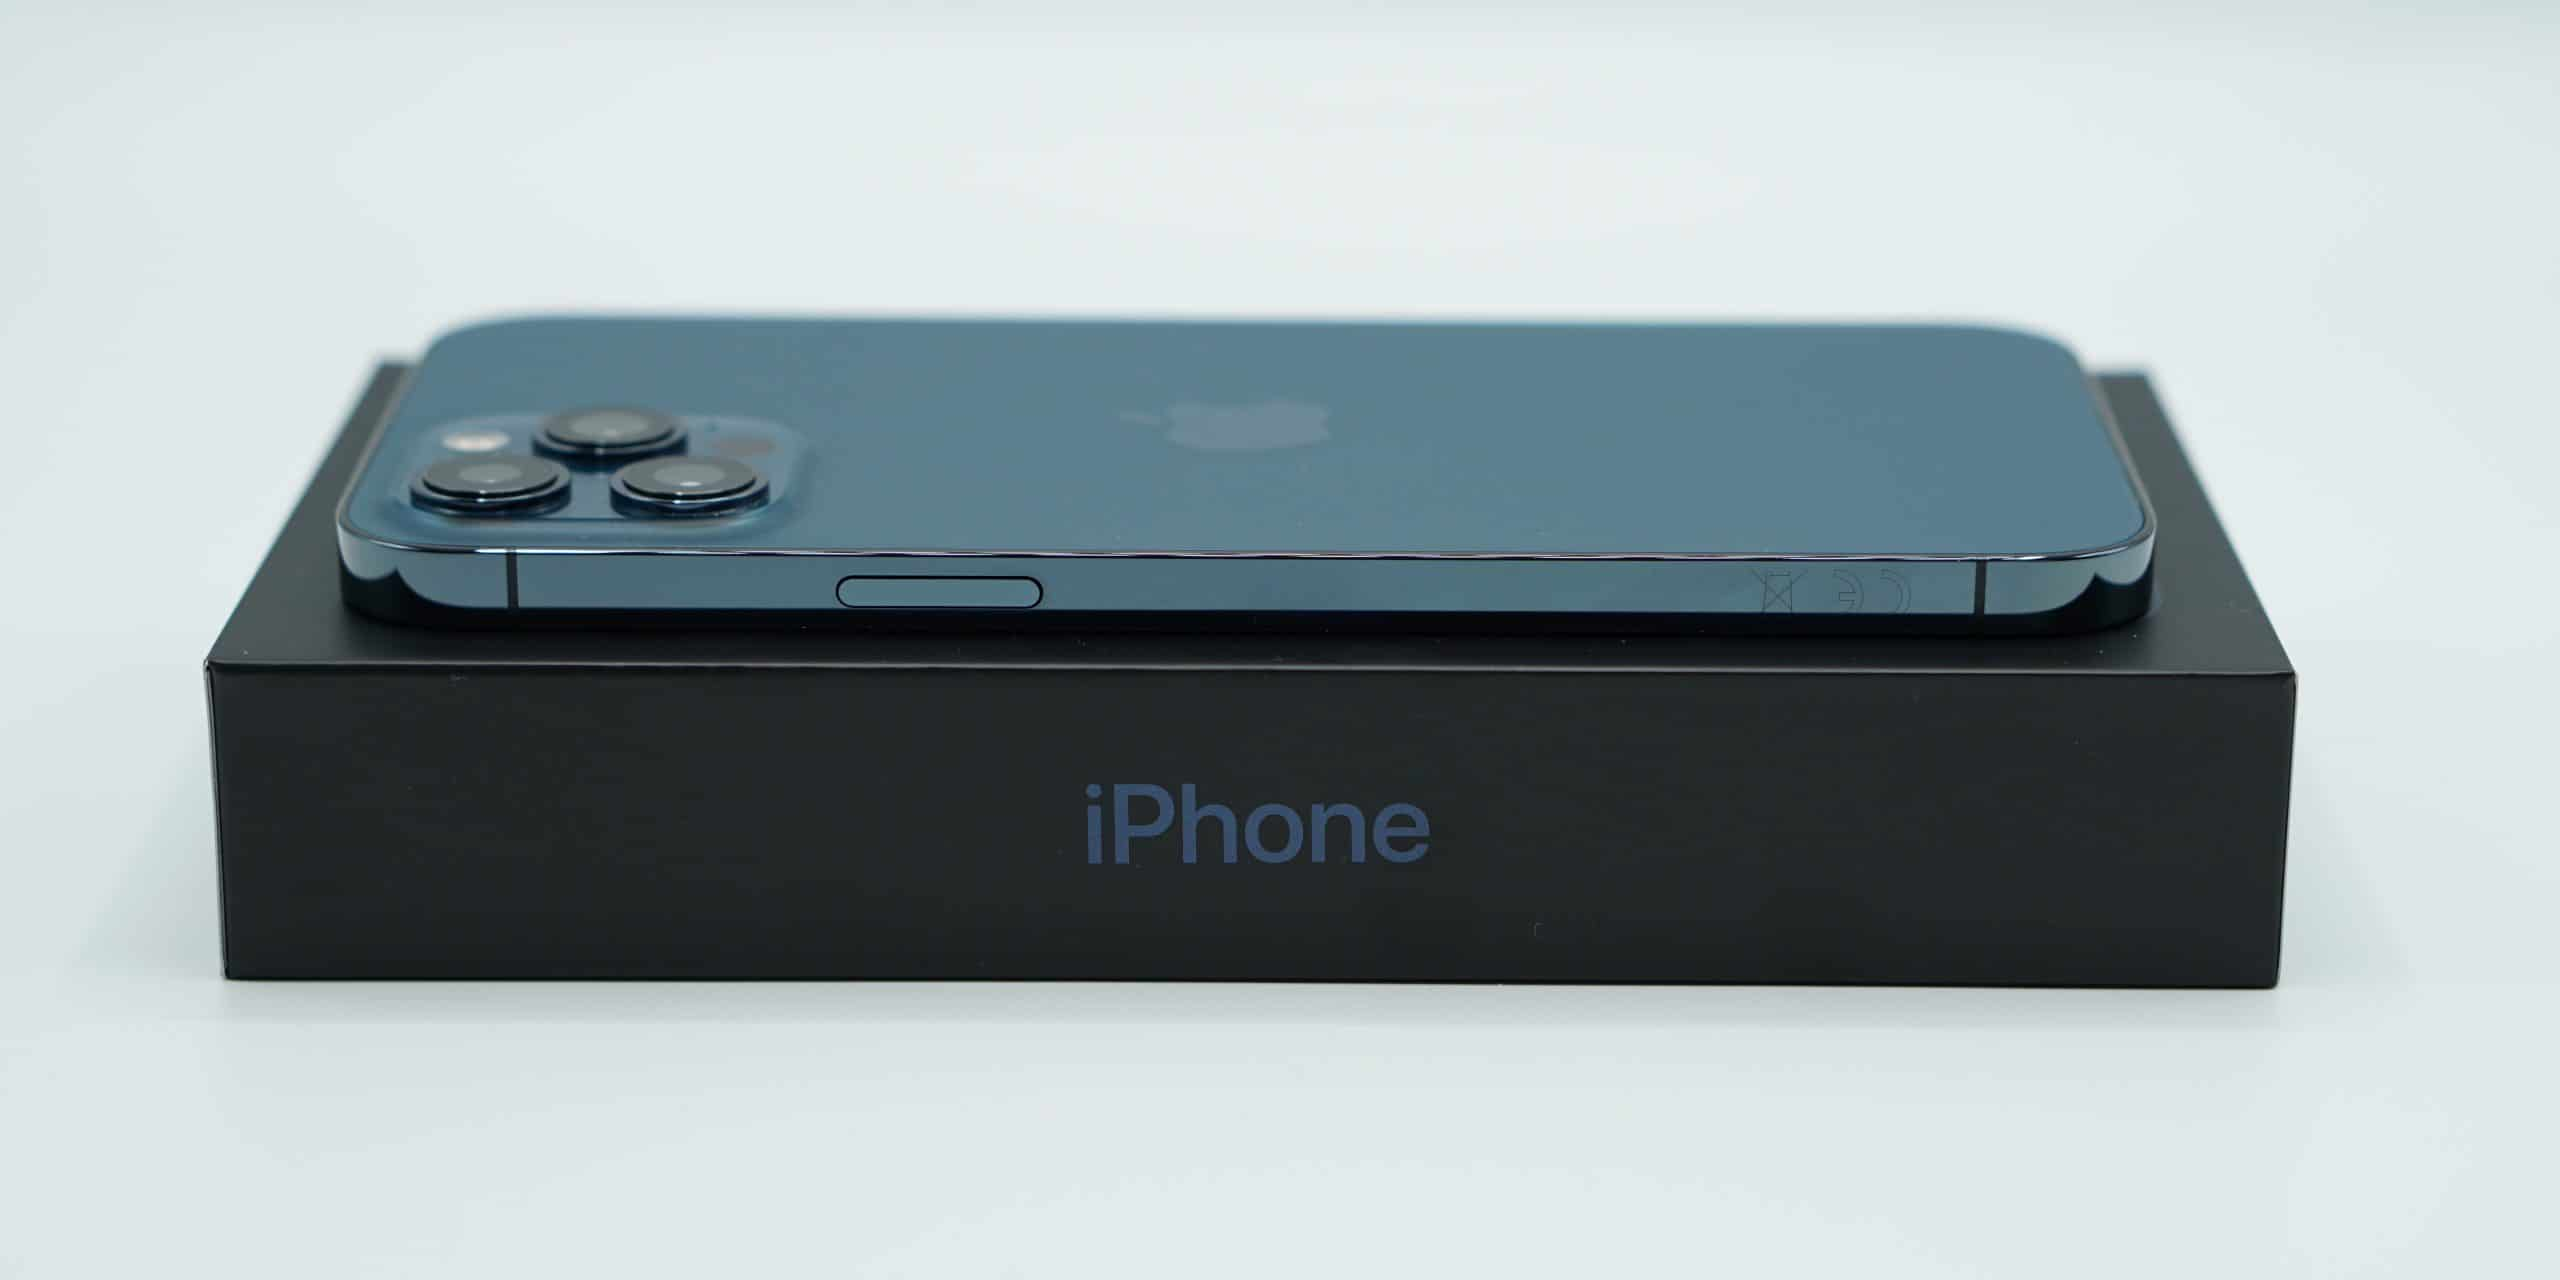 IPhone doce Pro Max y caja